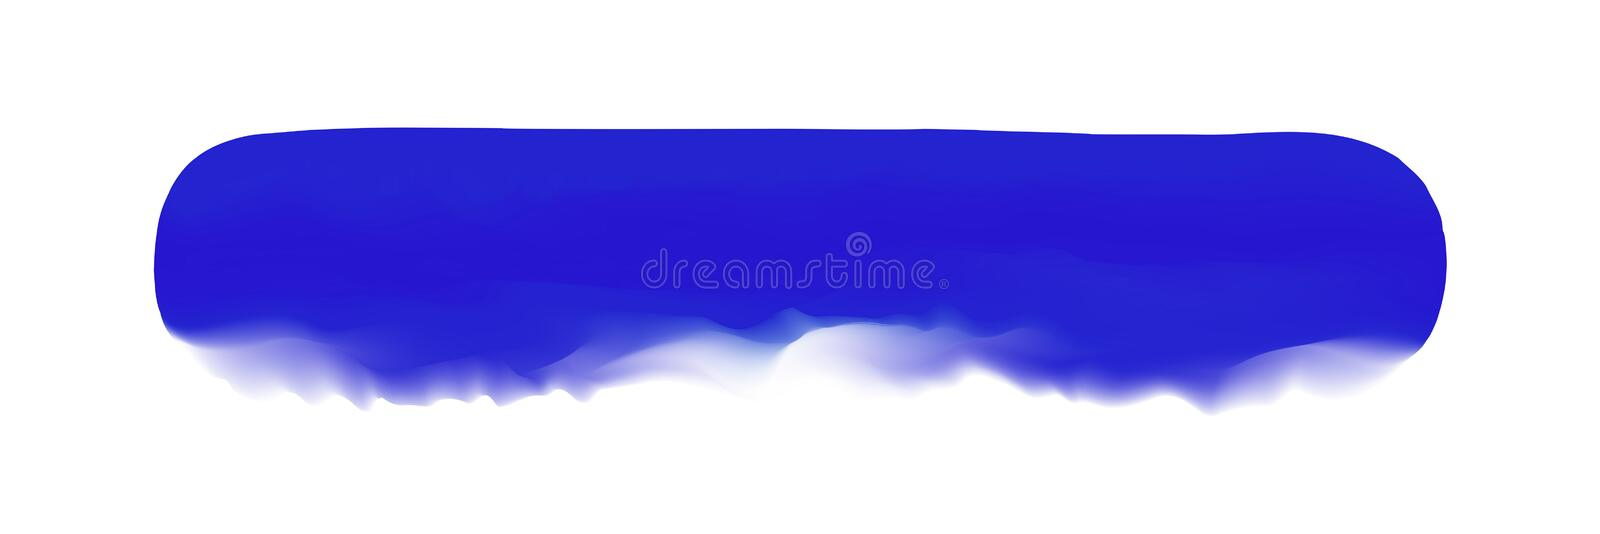 Blue stripe painted in watercolor on clean white background, blue watercolor brush strokes, illustration paint brush digital soft royalty free illustration